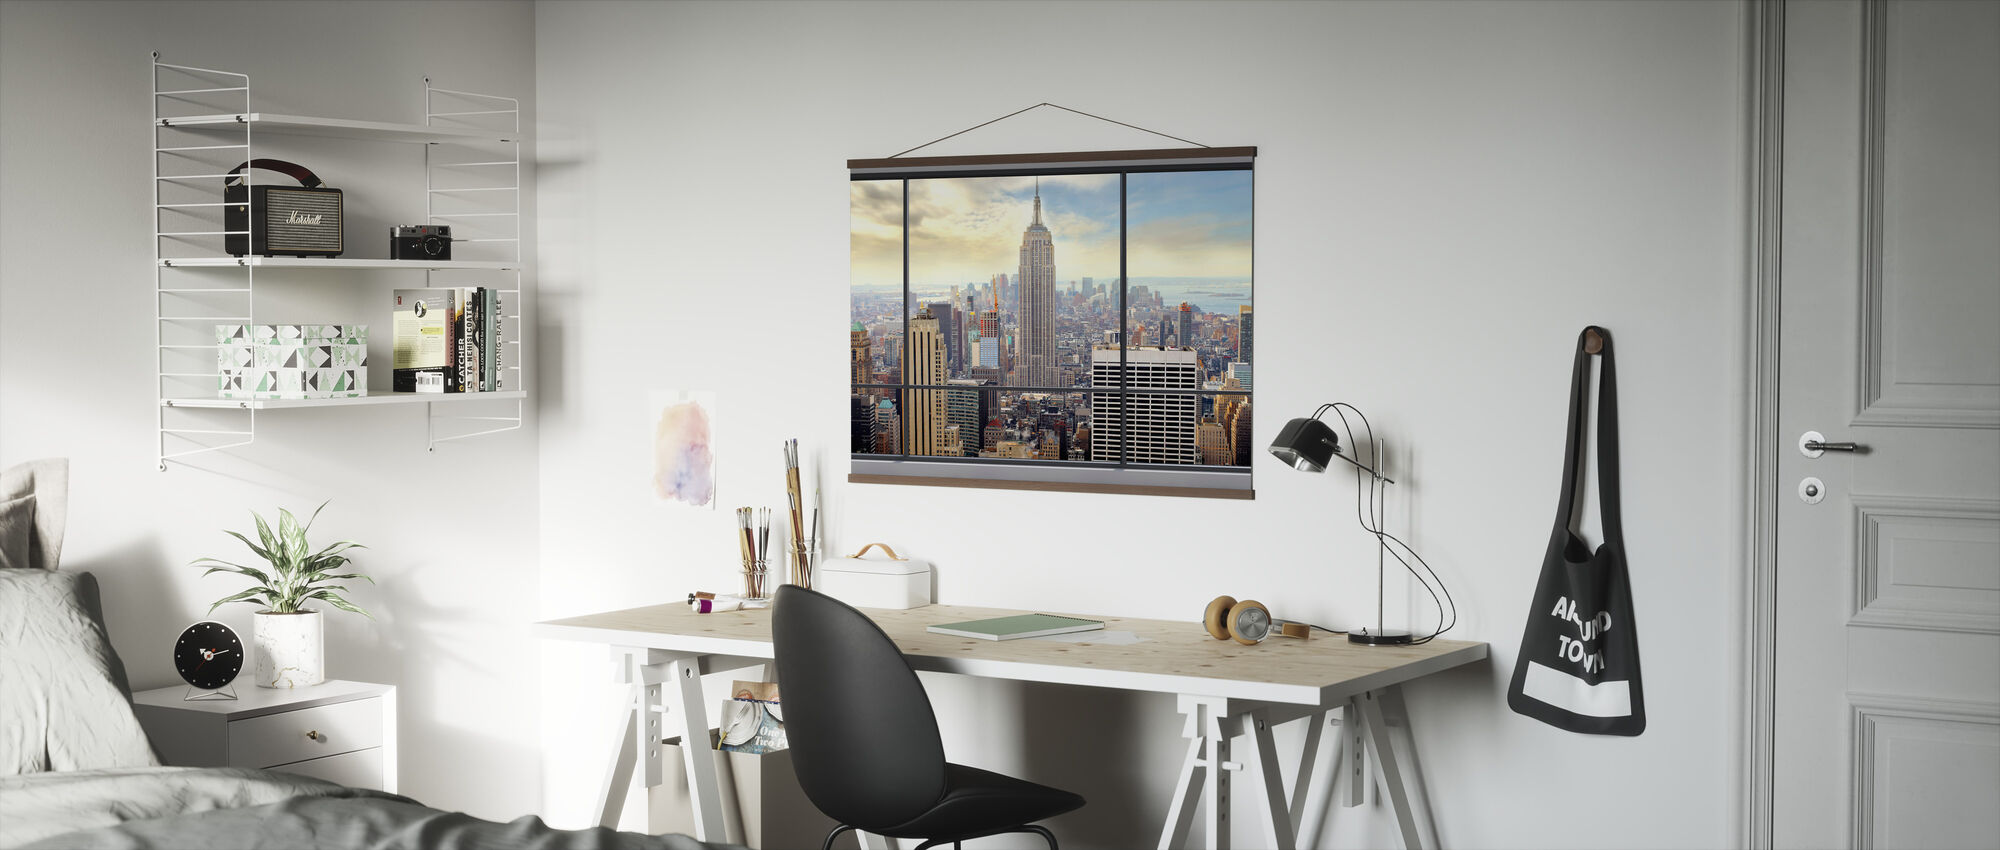 Penthouse Window View - Poster - Office